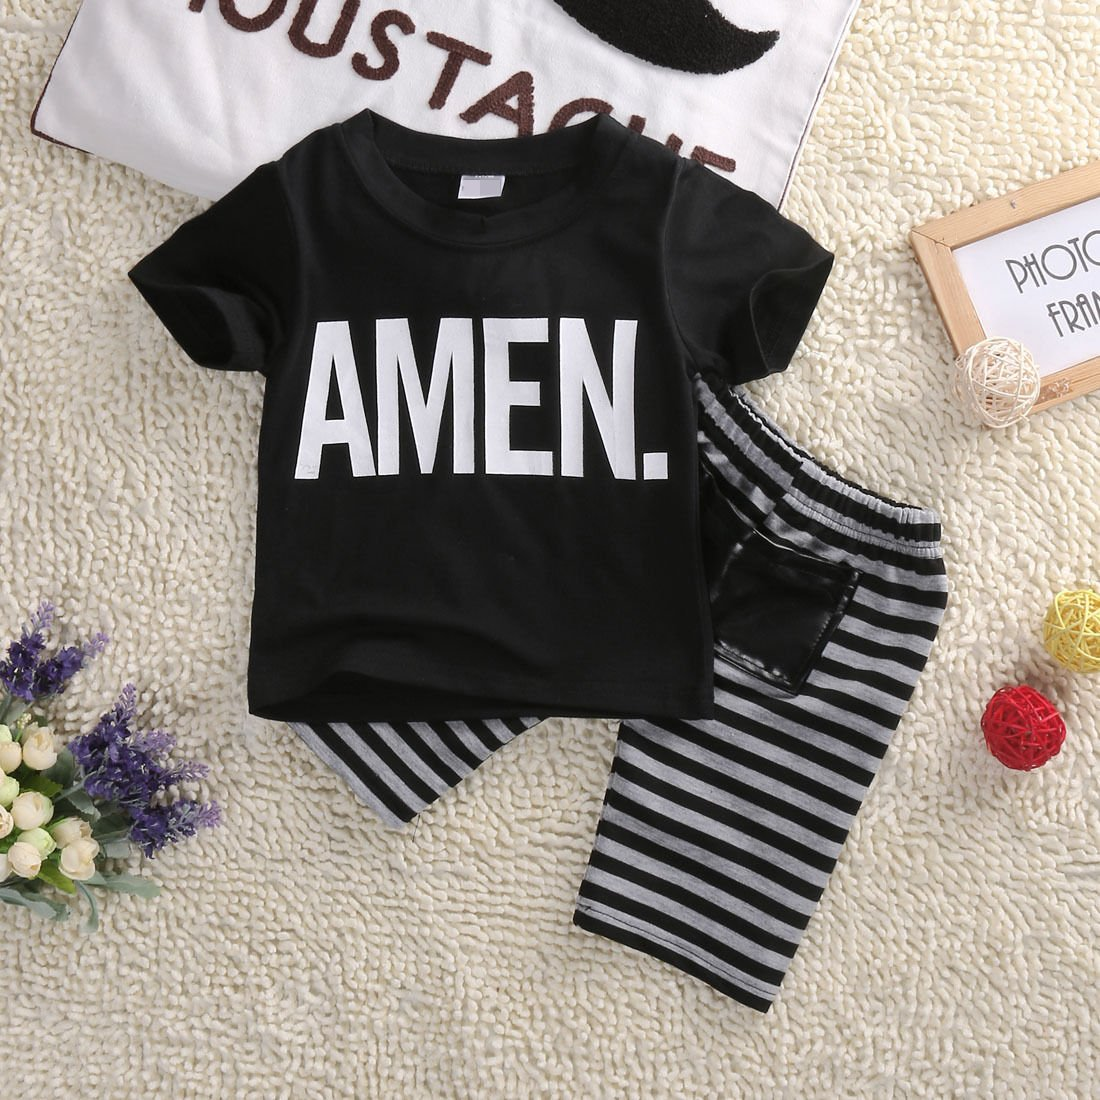 Flower Tiger Little Boys A Man Letters T-Shirt and Striped Shorts 2Pcs Outfit Set